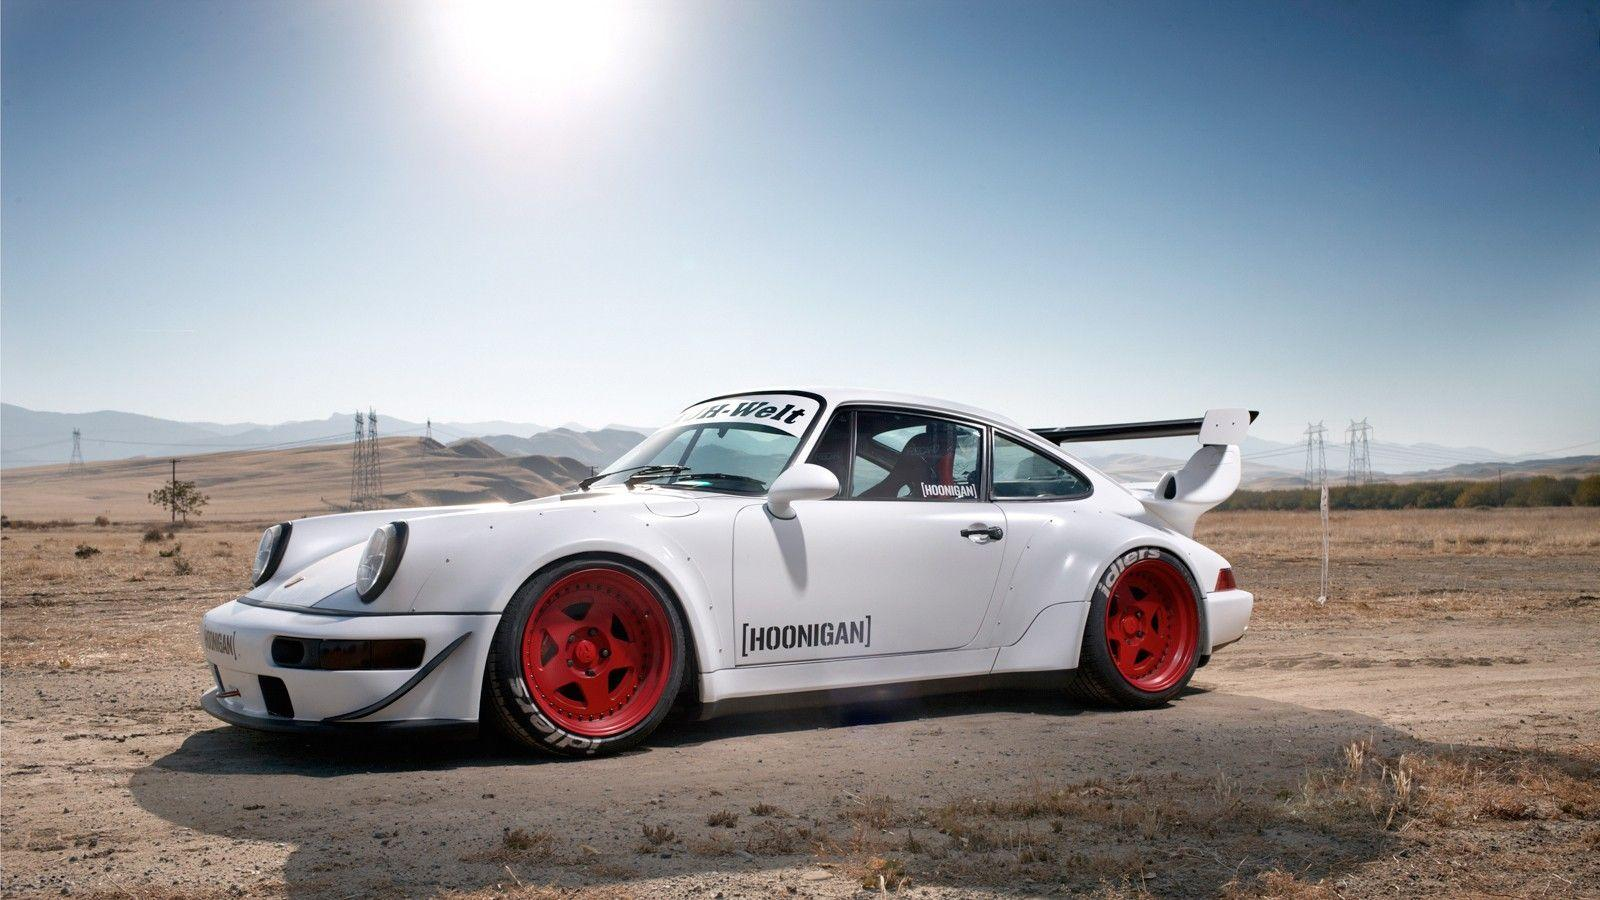 Rwb 4k Wallpaper: Hoonigan Wallpapers